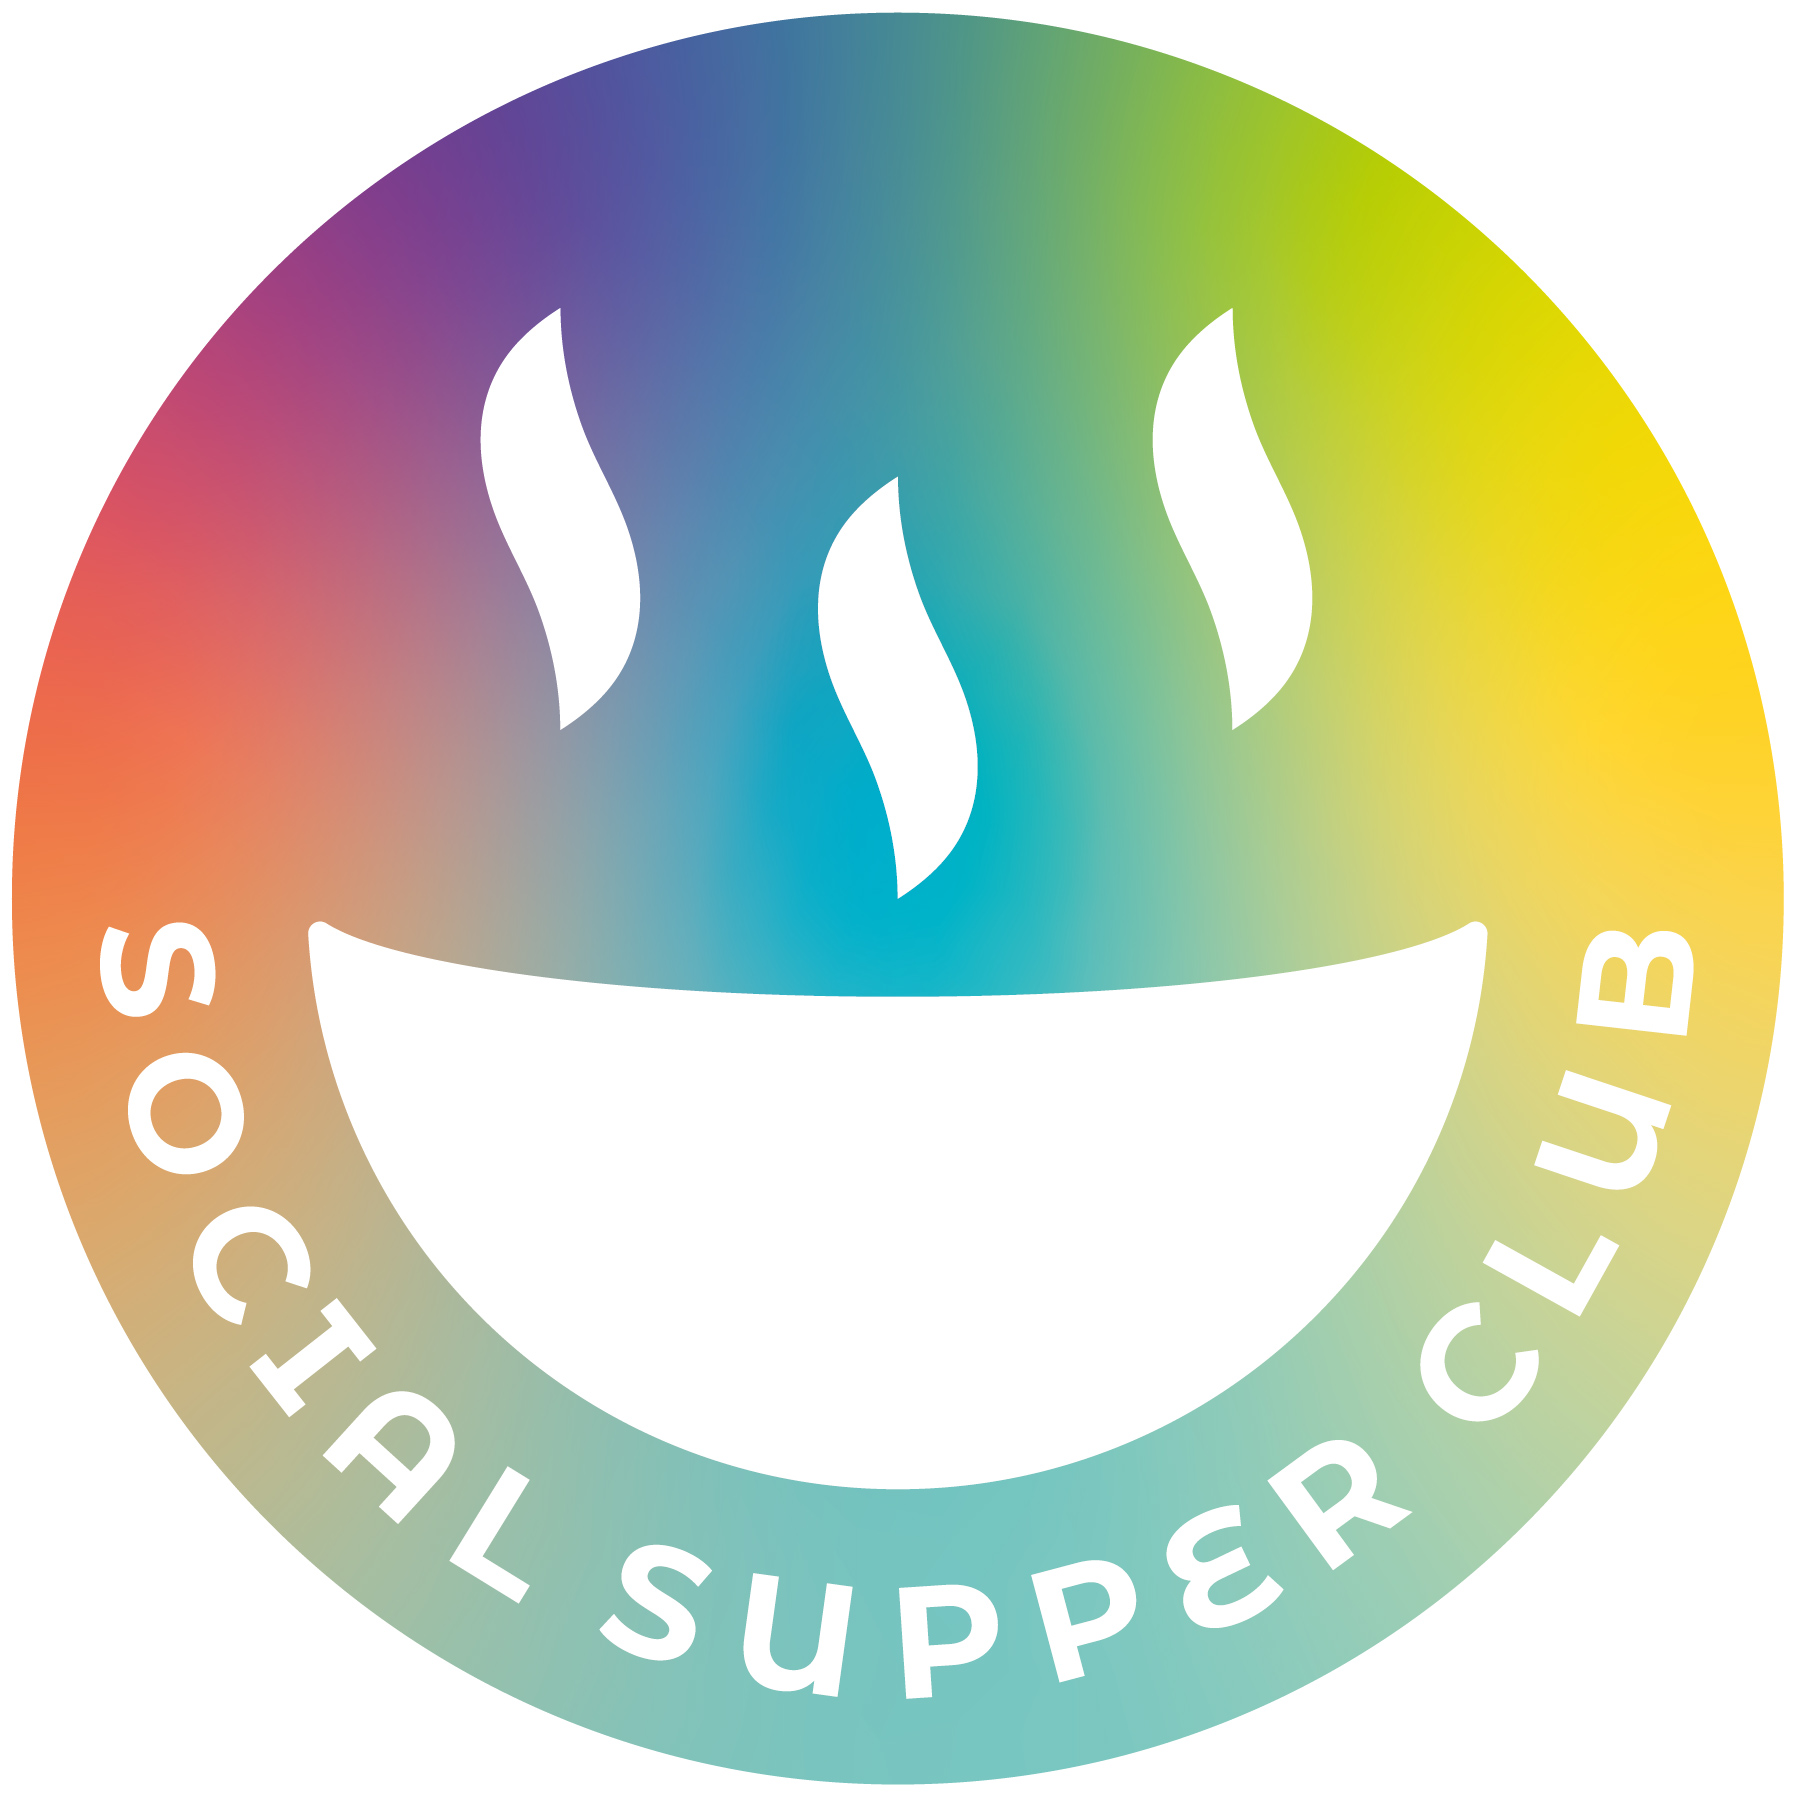 The Social Supper Club - Ribble Valley - Inaugural Event